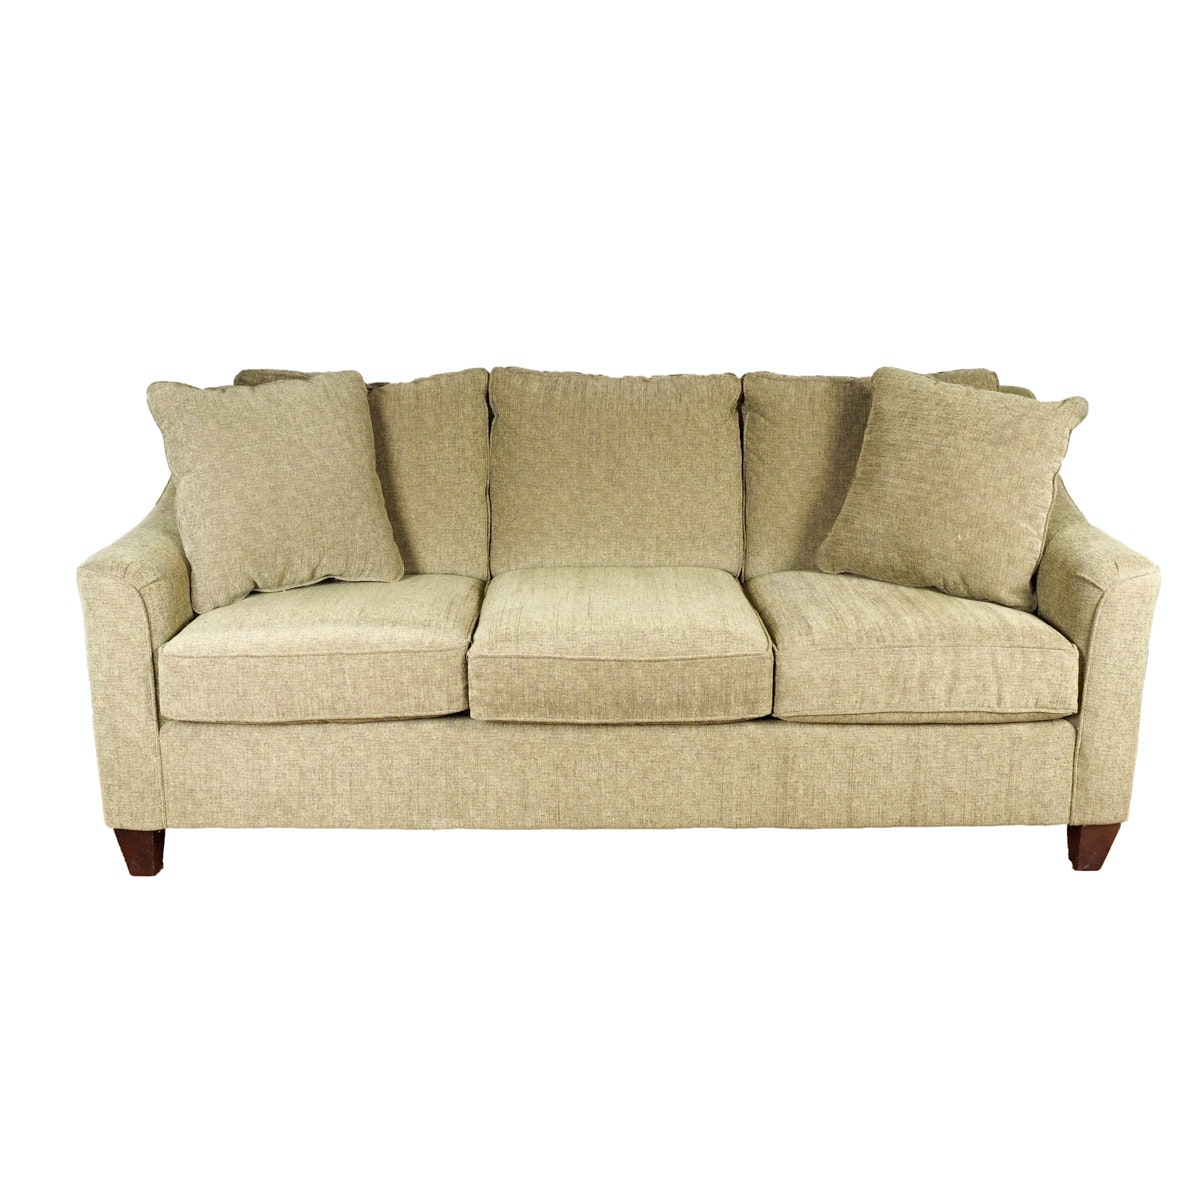 Sage Green Hickorycraft Upholstered Sofa : EBTH